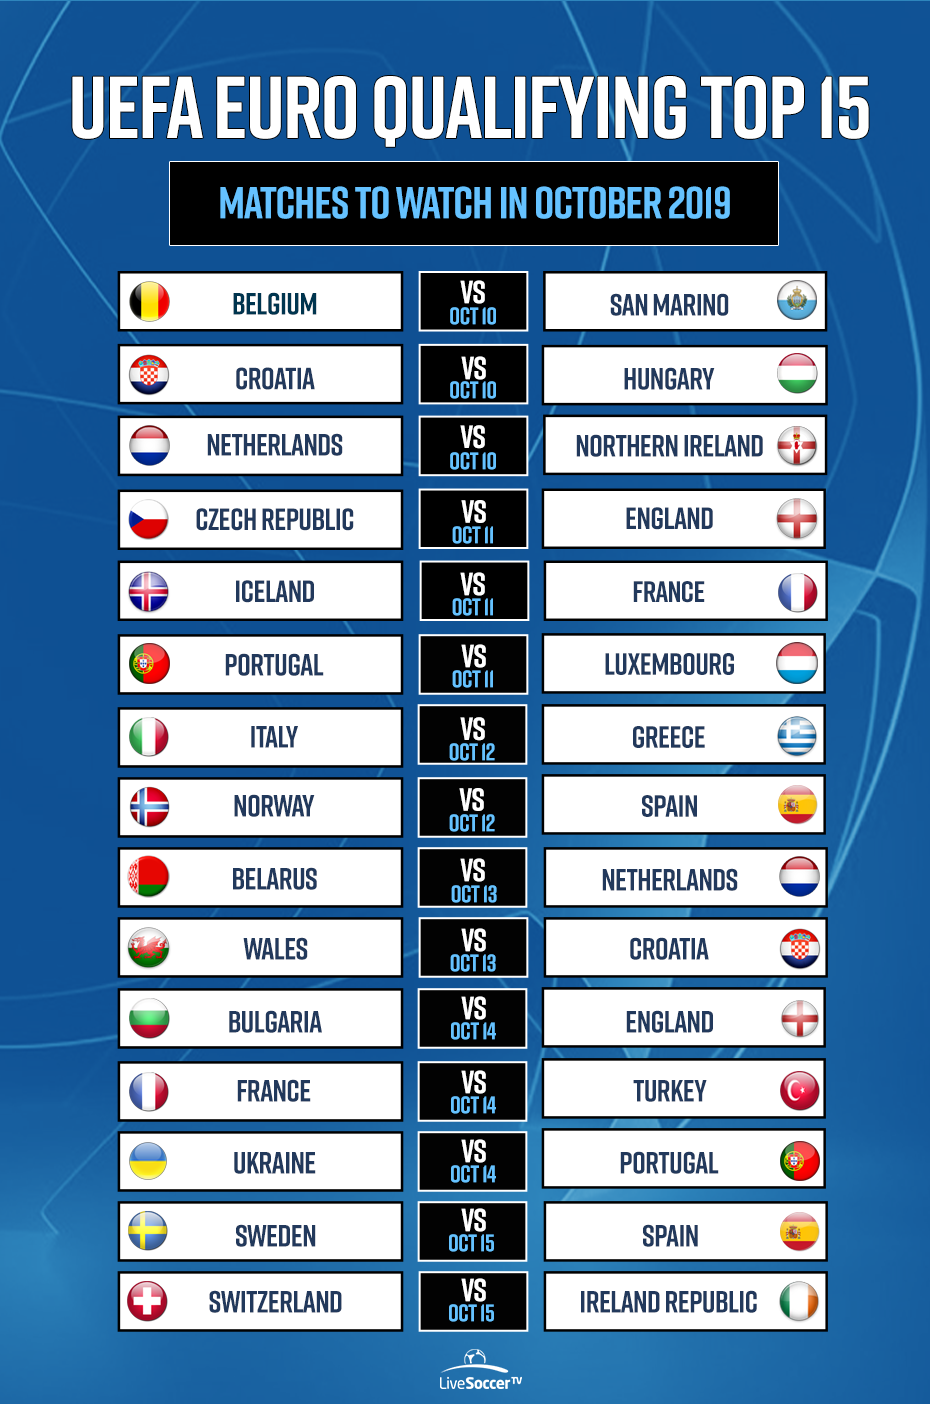 TV Schedules, England, Belgium, Germany, Netherlands, France, Spain, Italy, Portugal, Ukraine, Czech Republic, Wales, Croatia, UEFA Euro Qualifying